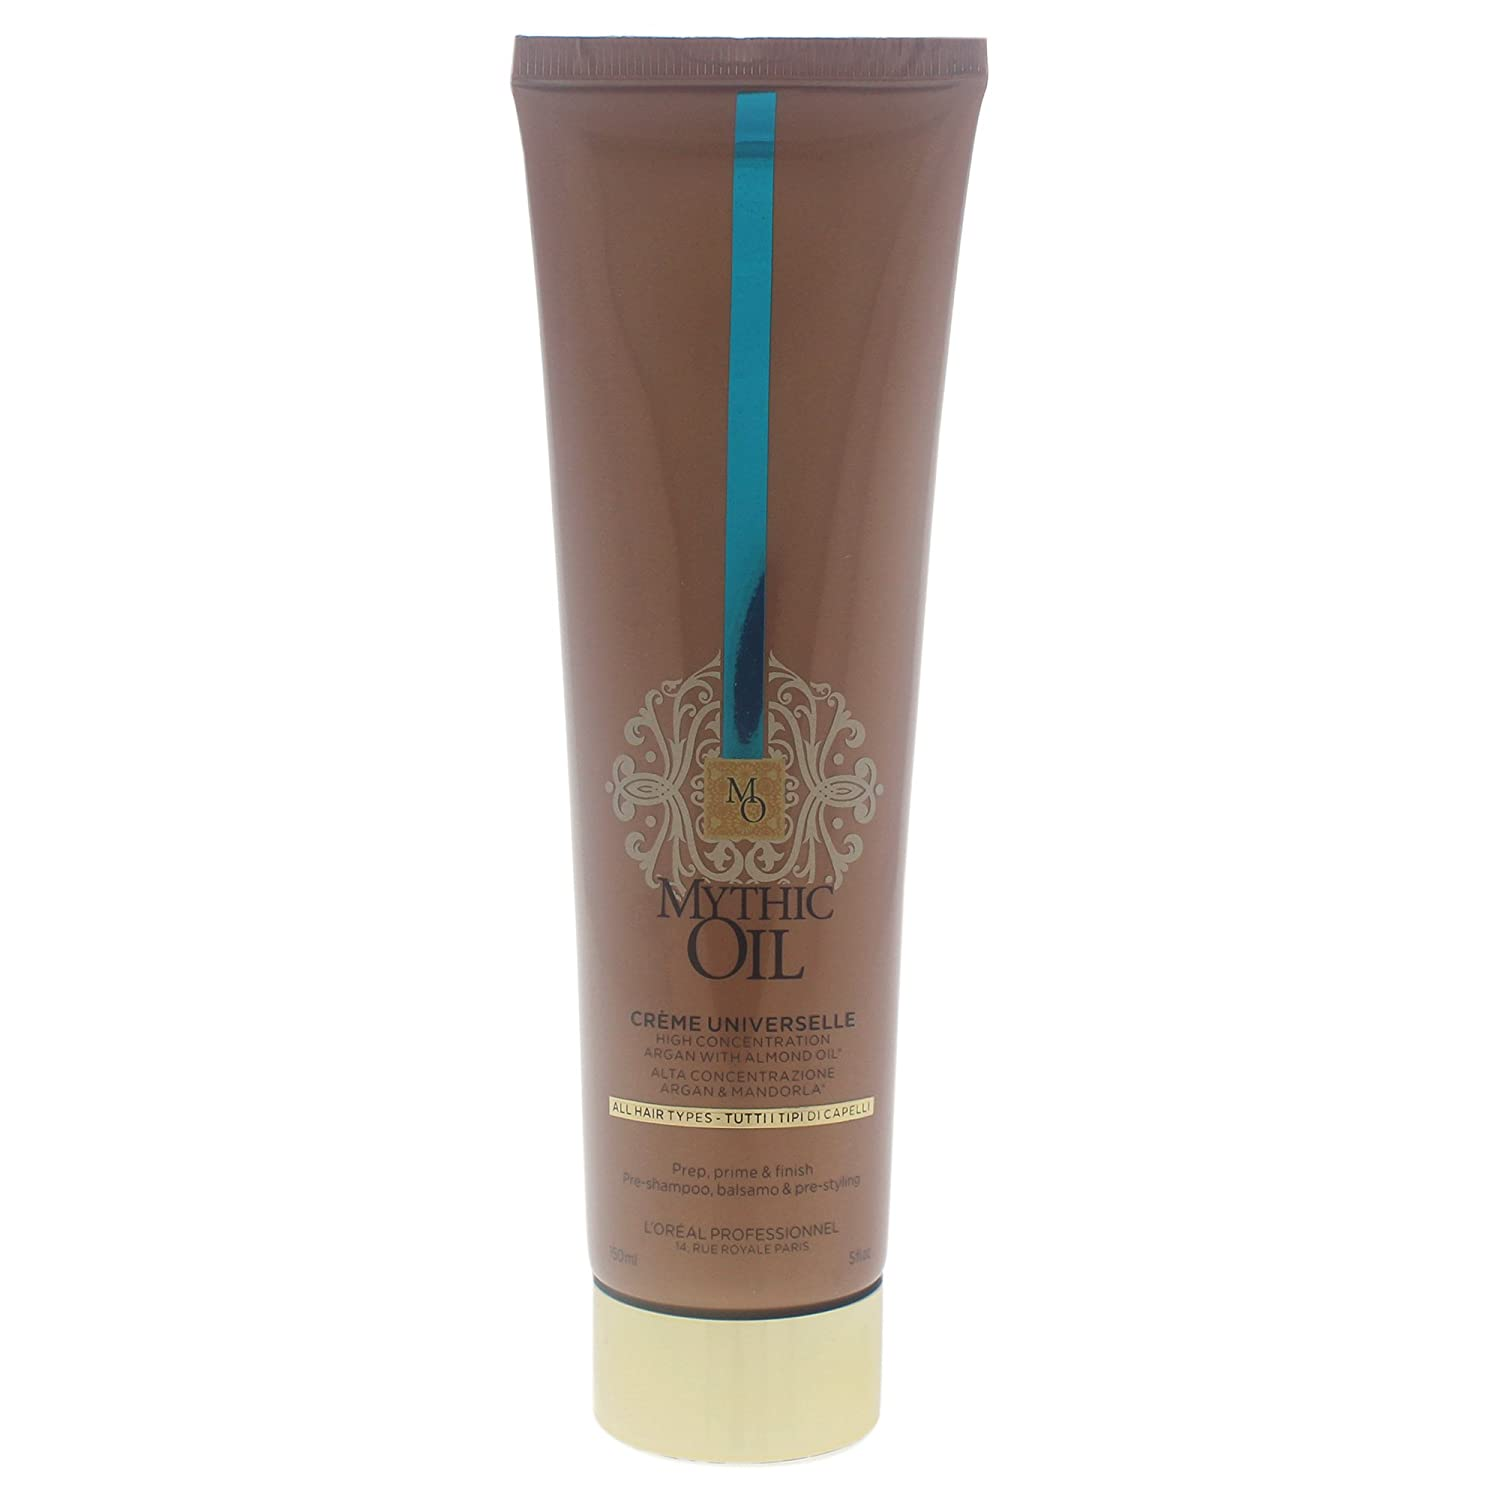 L'Oreal Professional Mythic Oil Creme Universelle, 5 Ounce PerfumeWorldWide Inc. Drop Ship LPF279